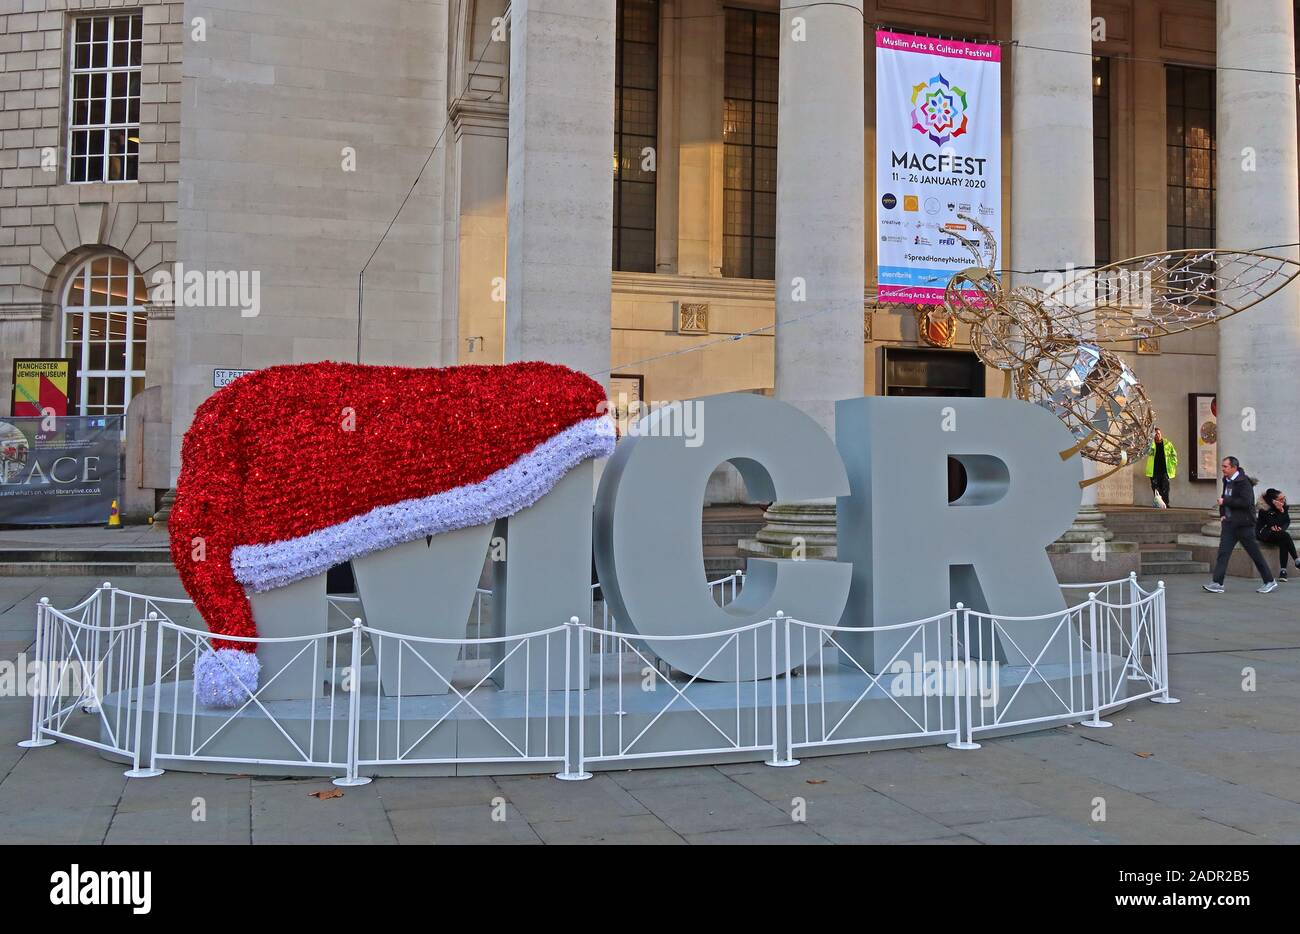 Christmas hat on a MCR,Christmas decorations,outside Manchester Central Library,St Peter's Square, Manchester M2 5PD Stock Photo